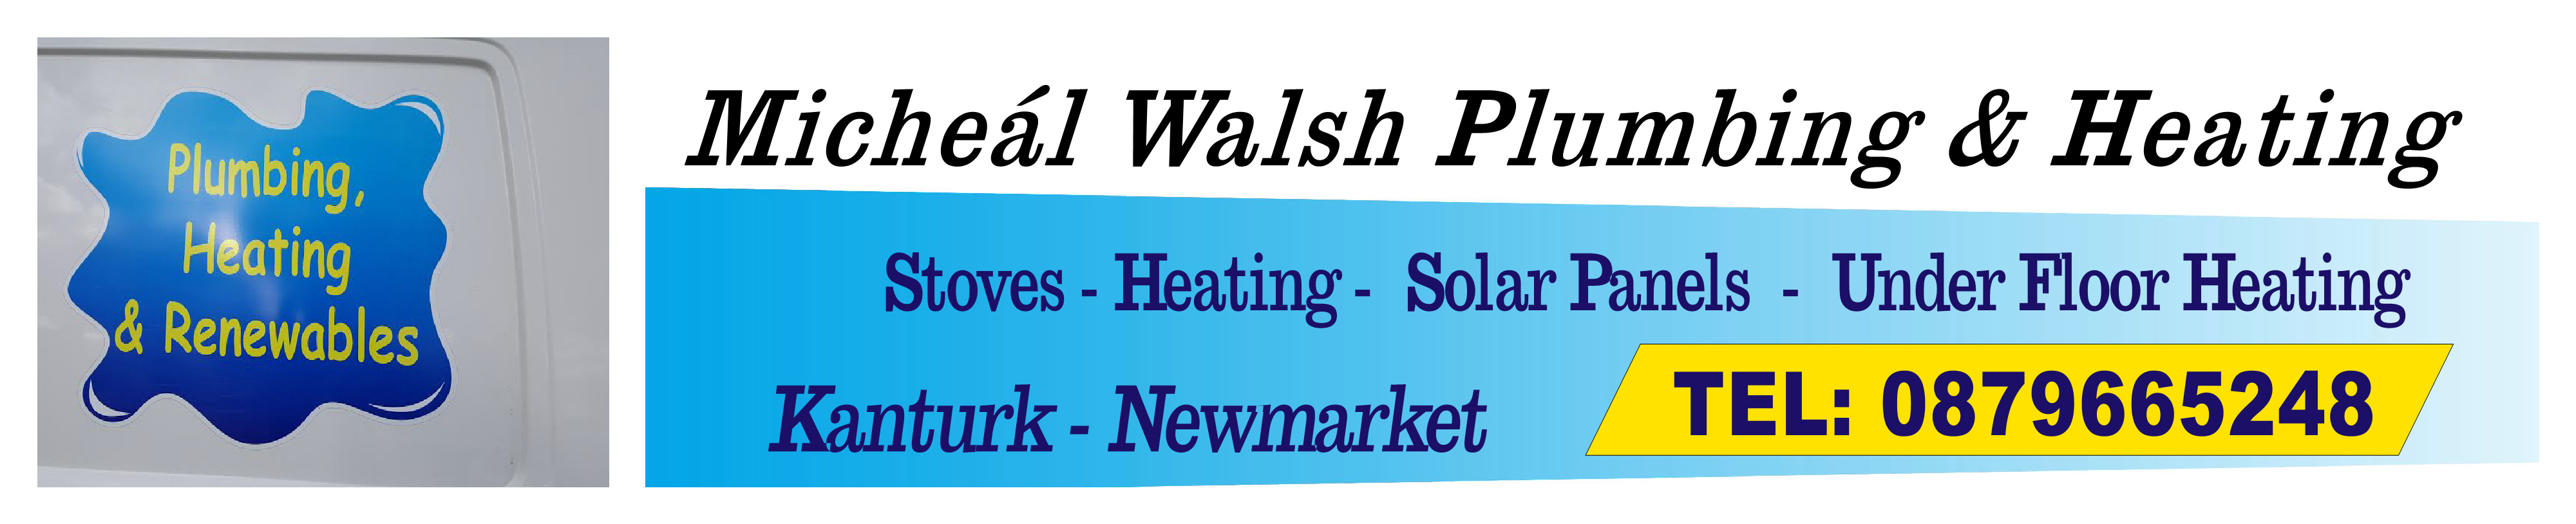 Micheal Walsh Plumbing and Heating, Newmarket, Cork